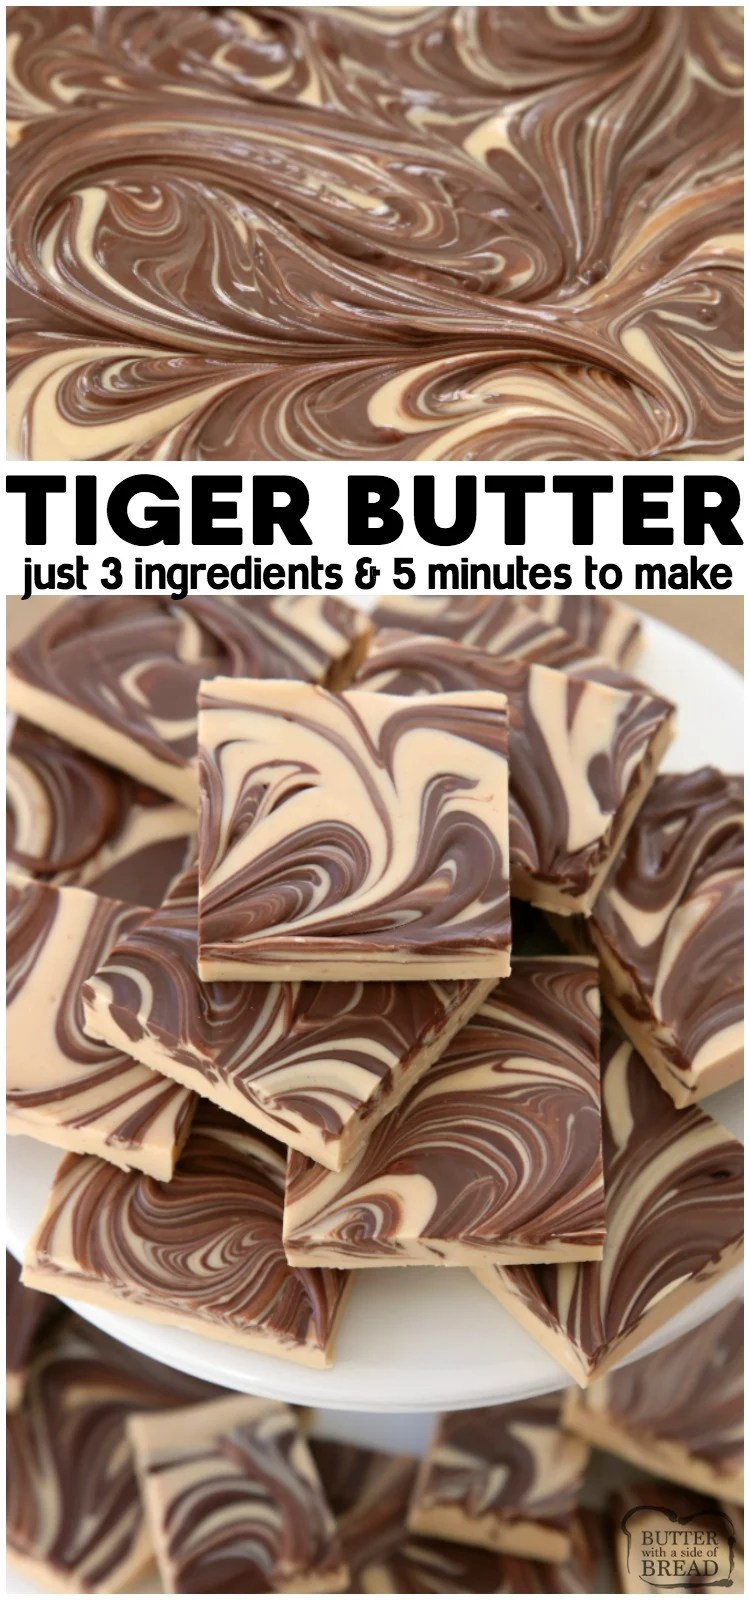 Tiger Butter made from 3 ingredients that are melted & swirled together in minutes. Gorgeous holiday candy recipe with rich & creamy peanut butter chocolate flavor. #tigerbutter #peanutbutter #chocolate #fudge #candy #Christmas #holidays #recipe #dessert from BUTTER WITH A SIDE OF BREAD